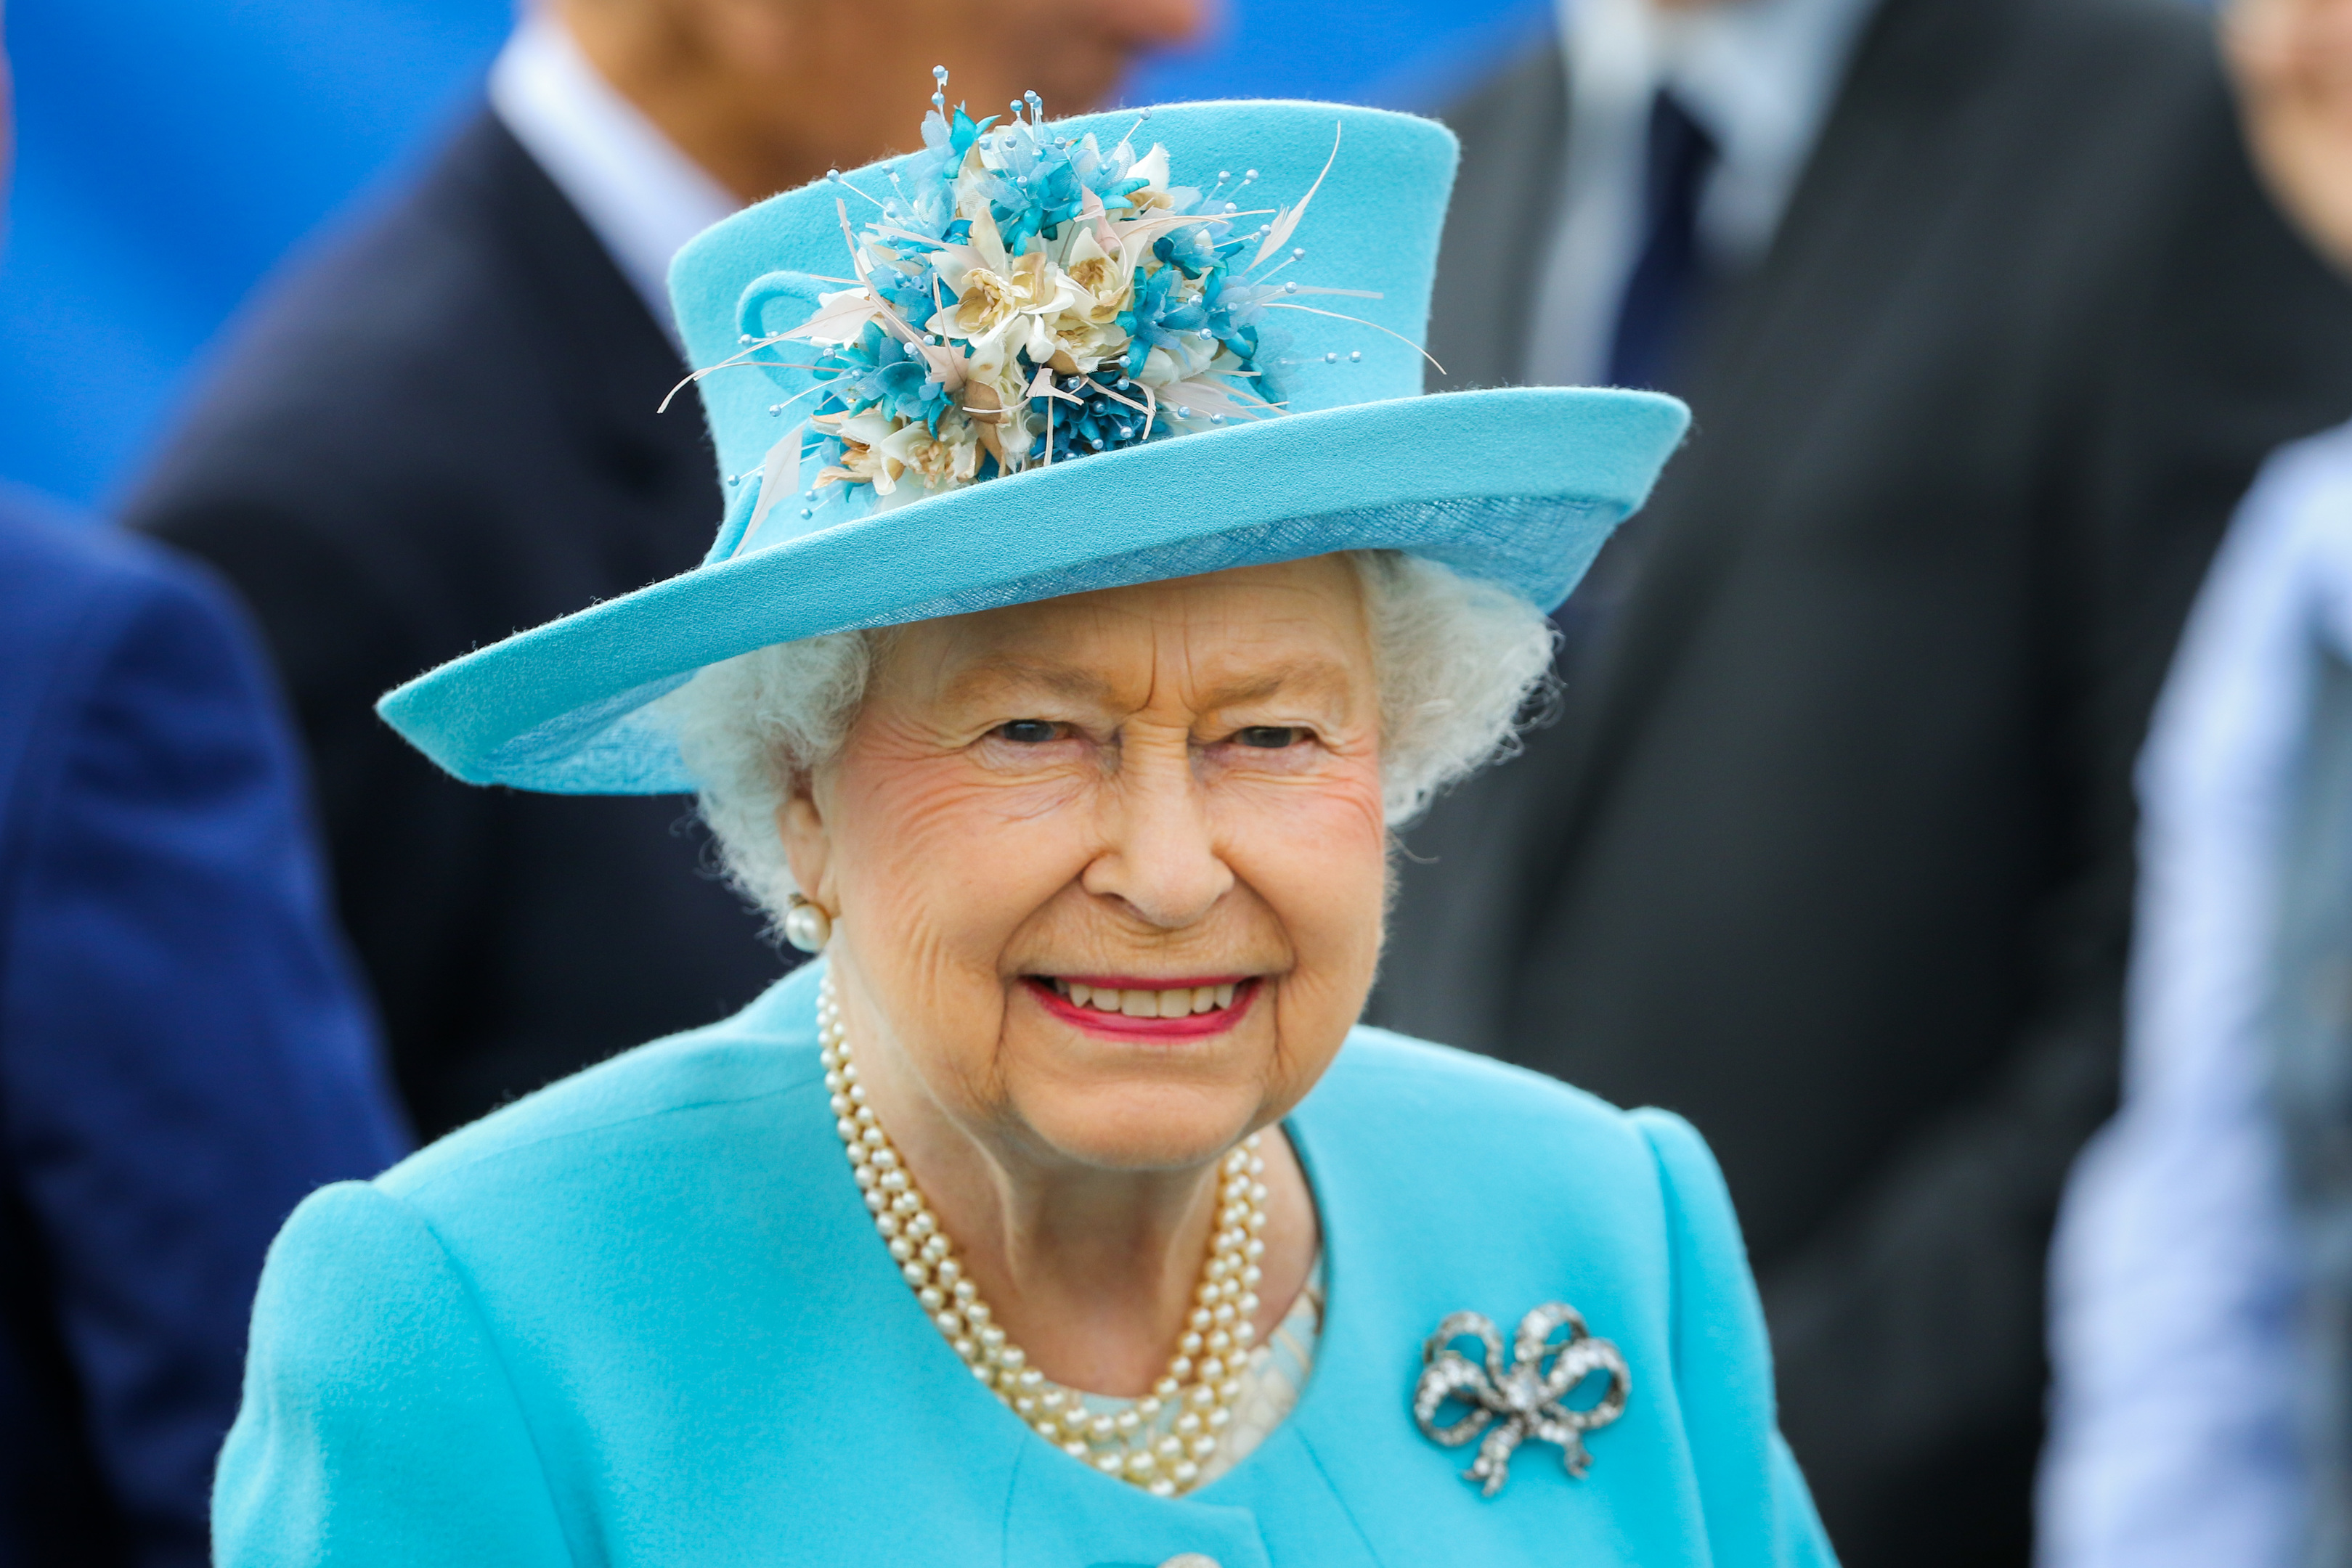 The Queen, pictured during her recent visit to Dundee.